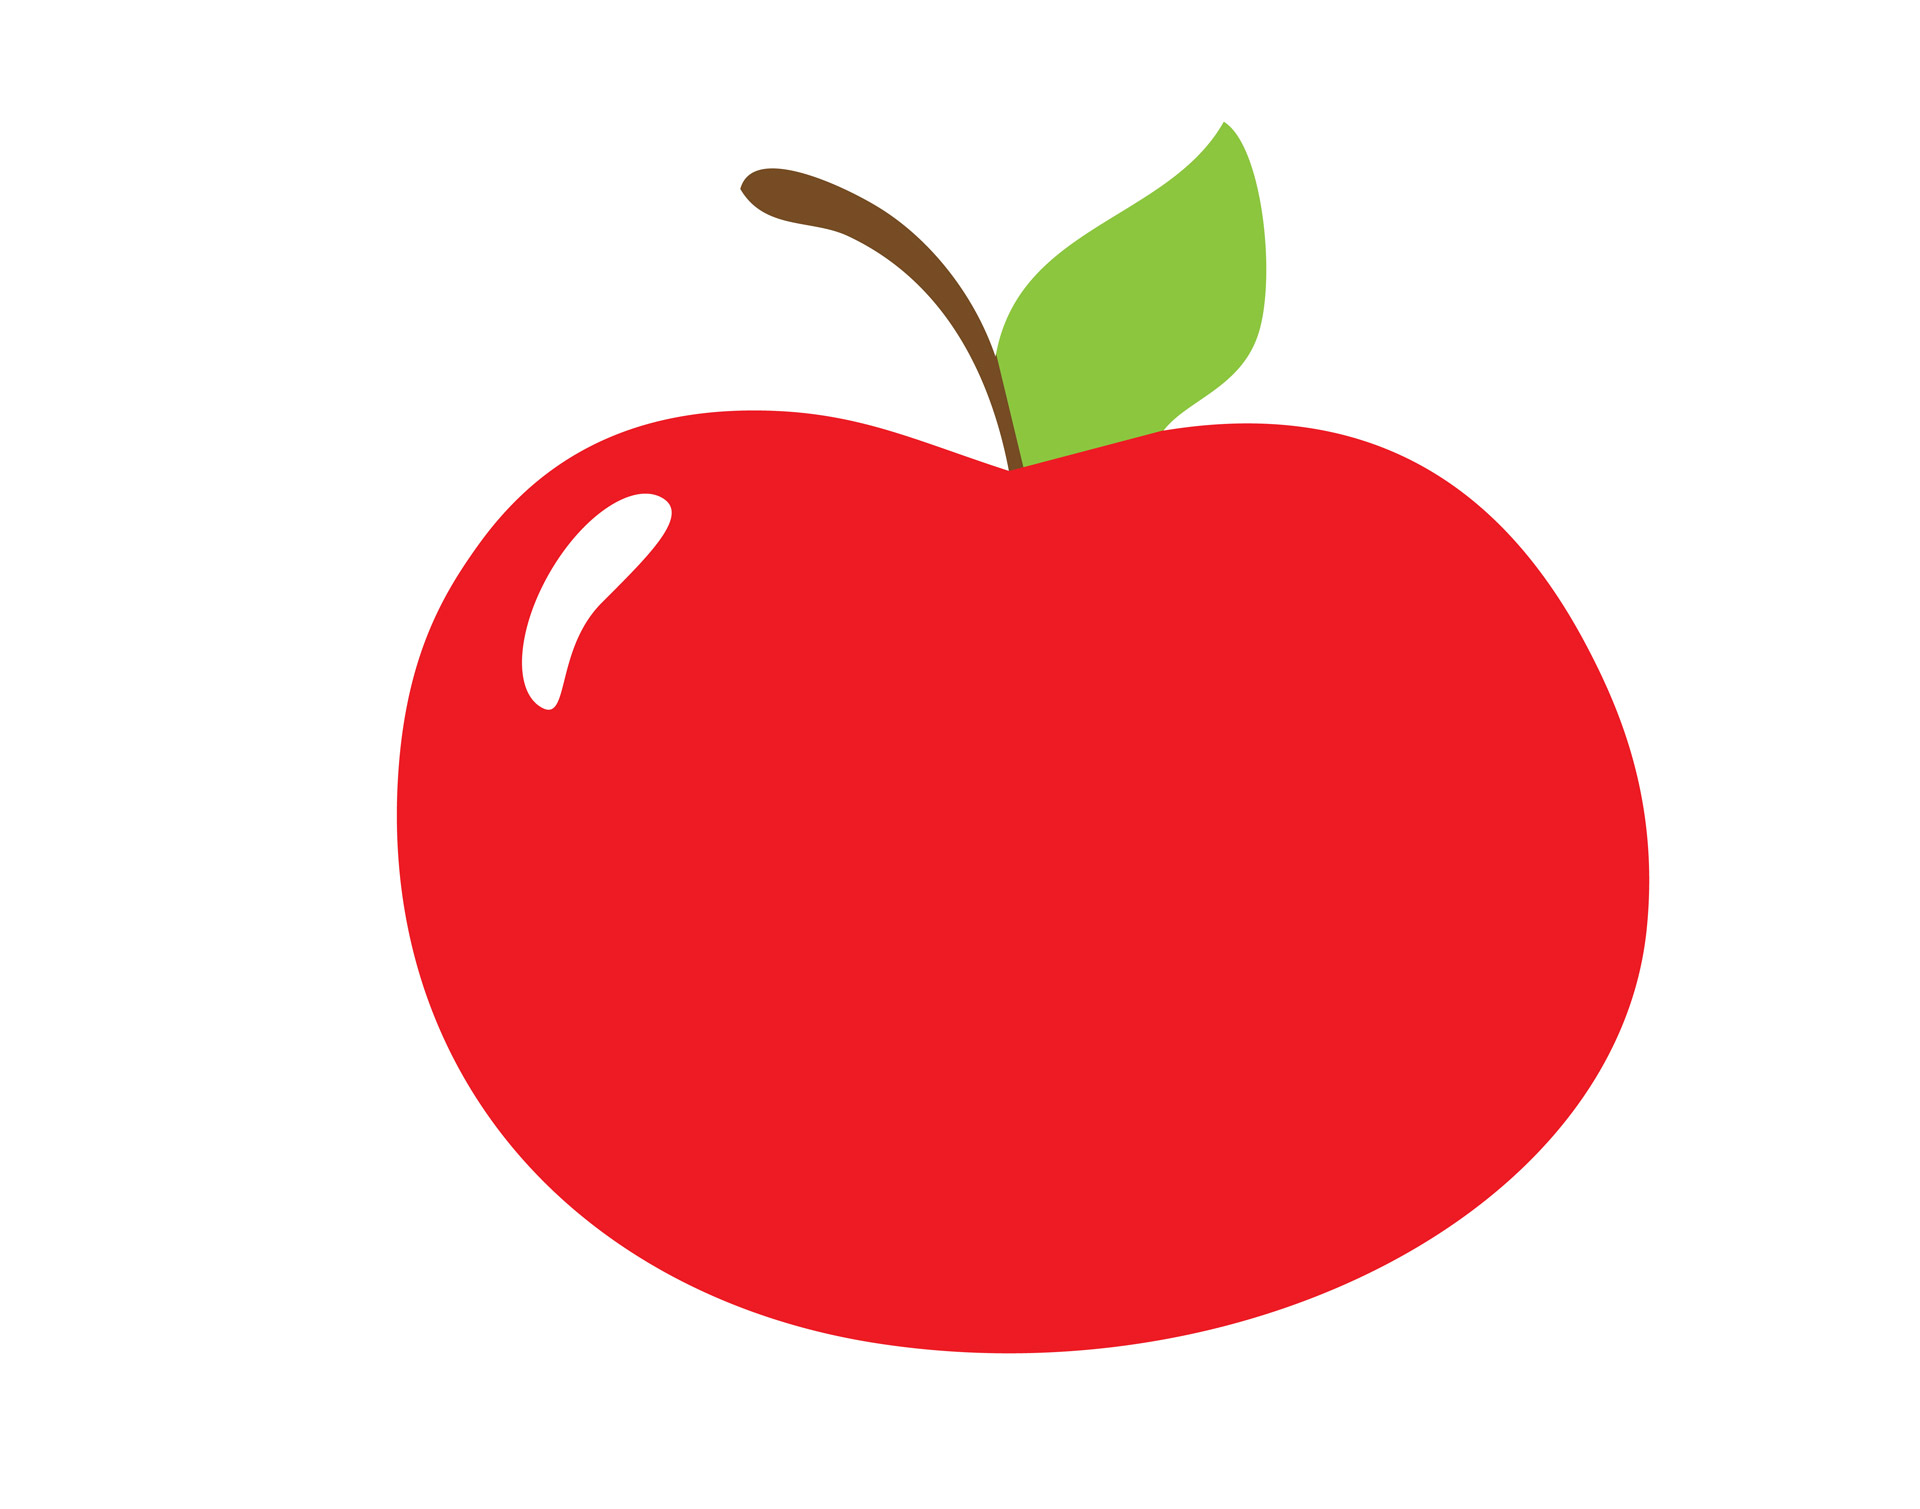 Apple apple clipart clipart download Red Apple Clipart Free Stock Photo - Public Domain Pictures clipart download